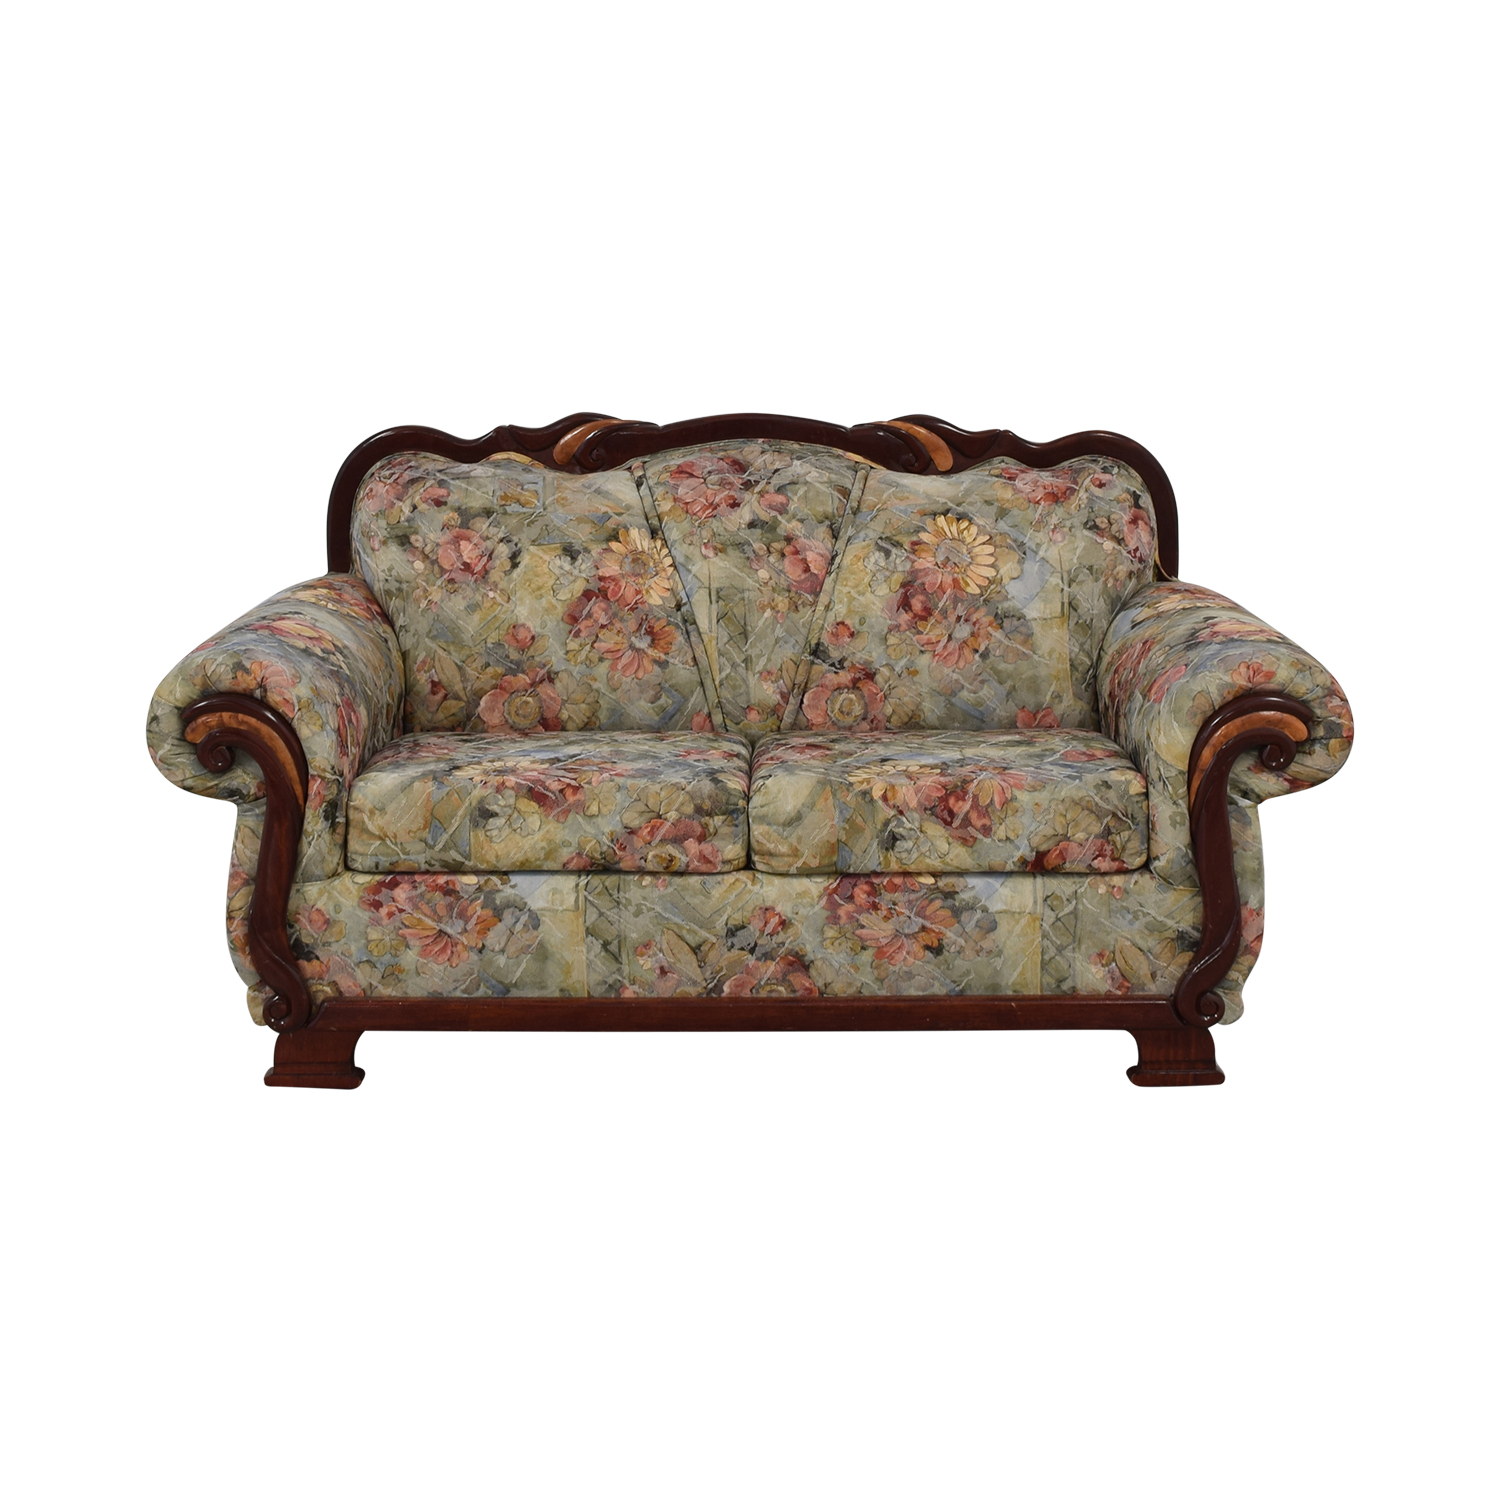 Floral Upholstered Loveseat dimensions